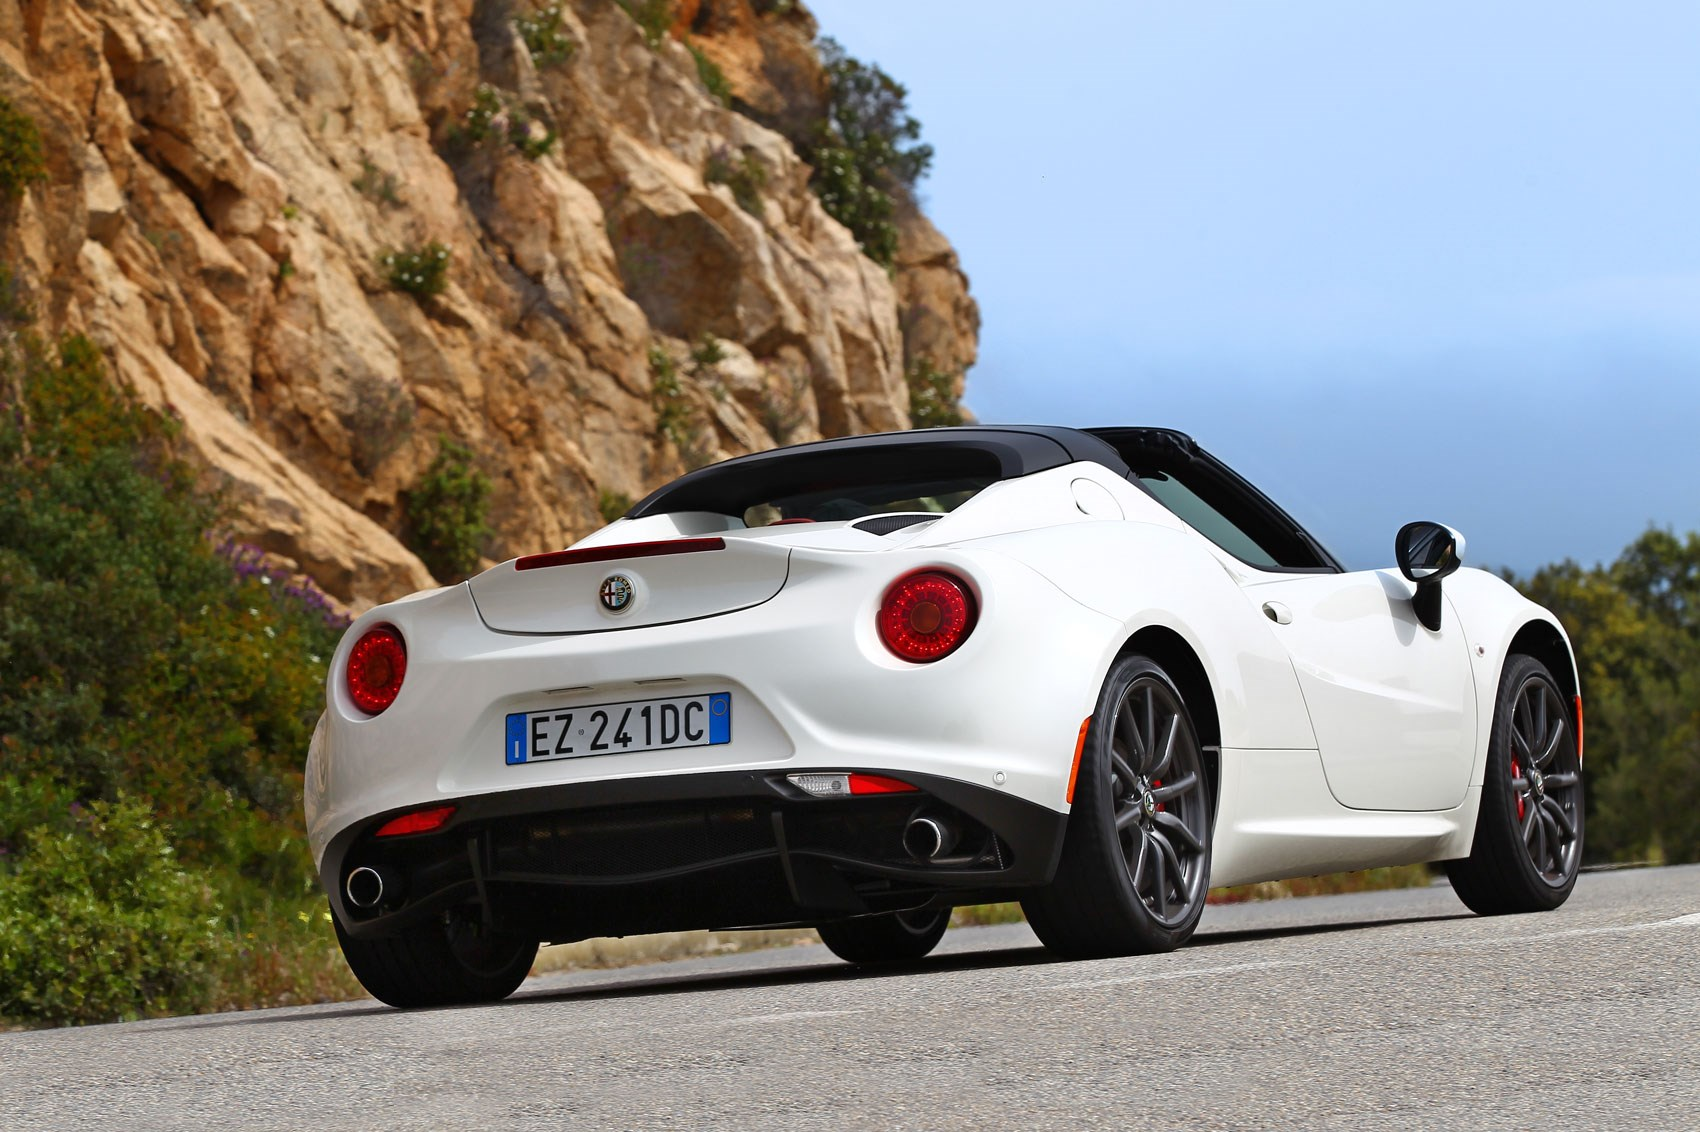 alfa romeo 4c spider 2015 review by car magazine. Black Bedroom Furniture Sets. Home Design Ideas